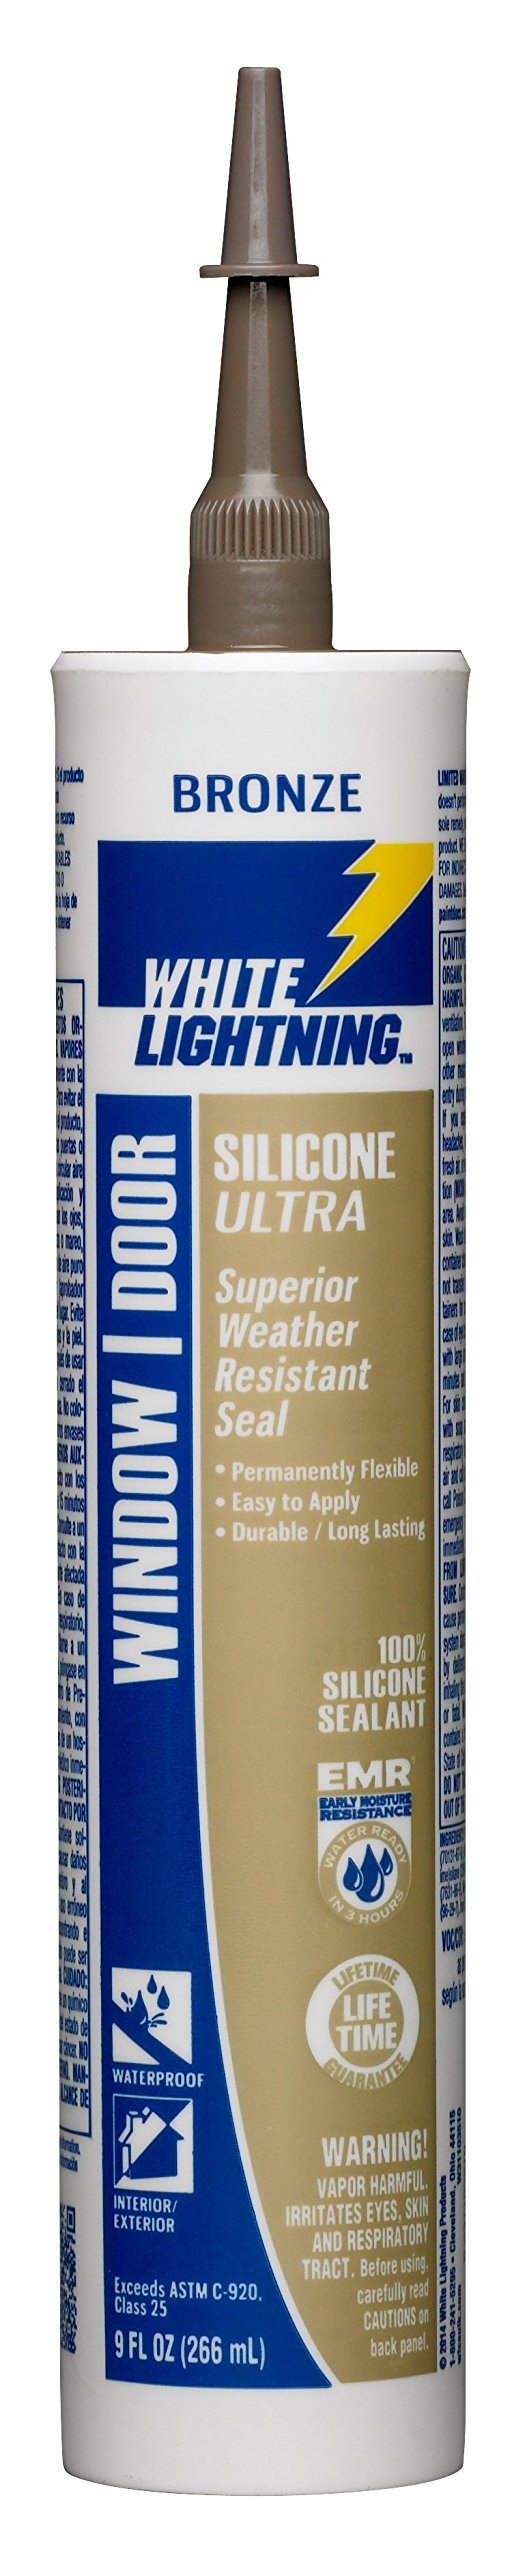 White Lightning W31103510 SILICONE ULTRA Window & Door Sealant, Bronze, 10 ounce